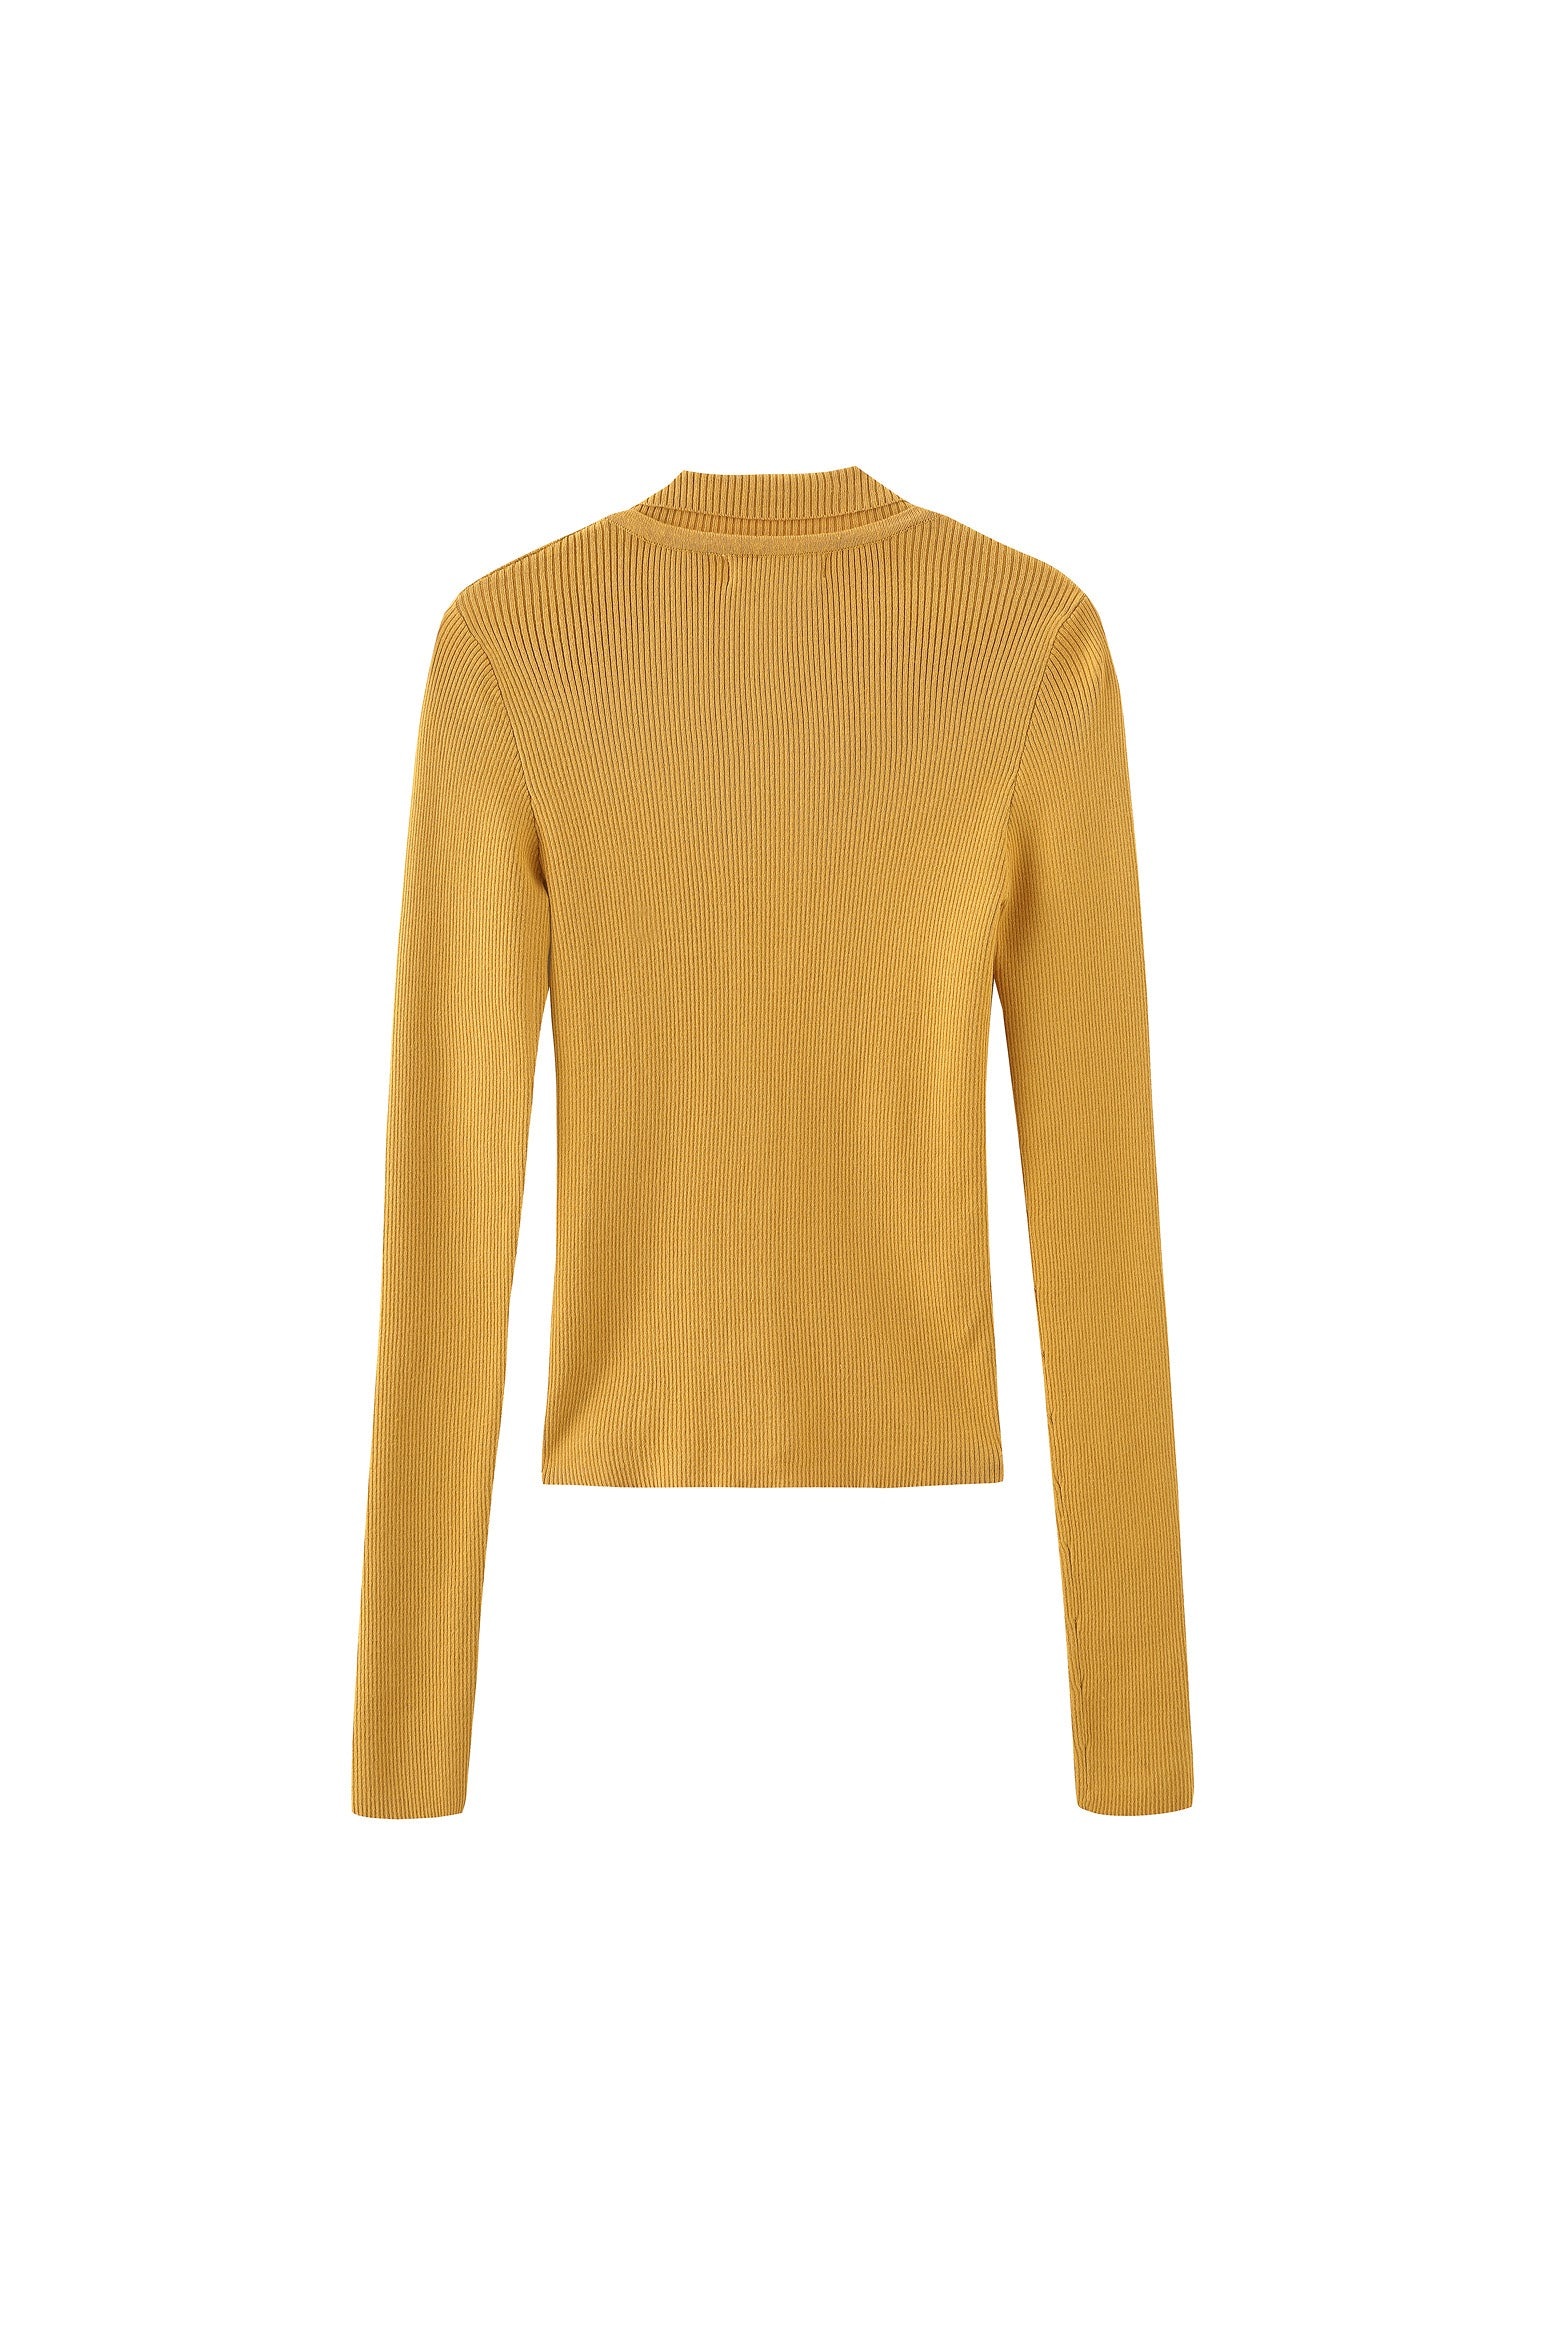 Elisa Knitted Top in Mustard